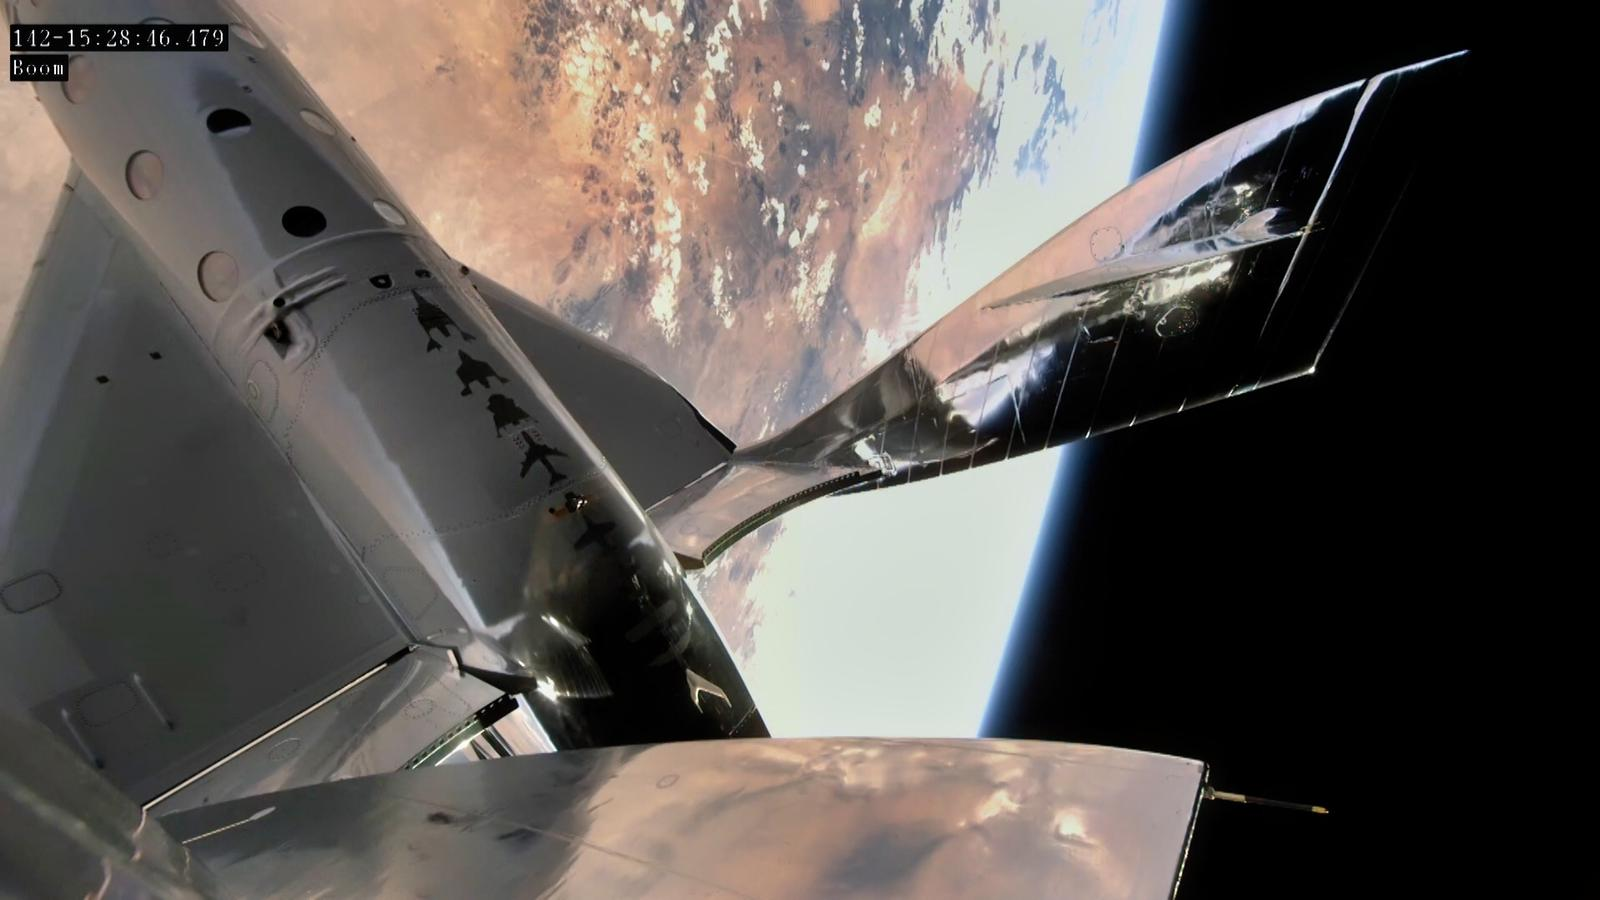 The view from space for Virgin Galactic's VSS Unity spaceplane